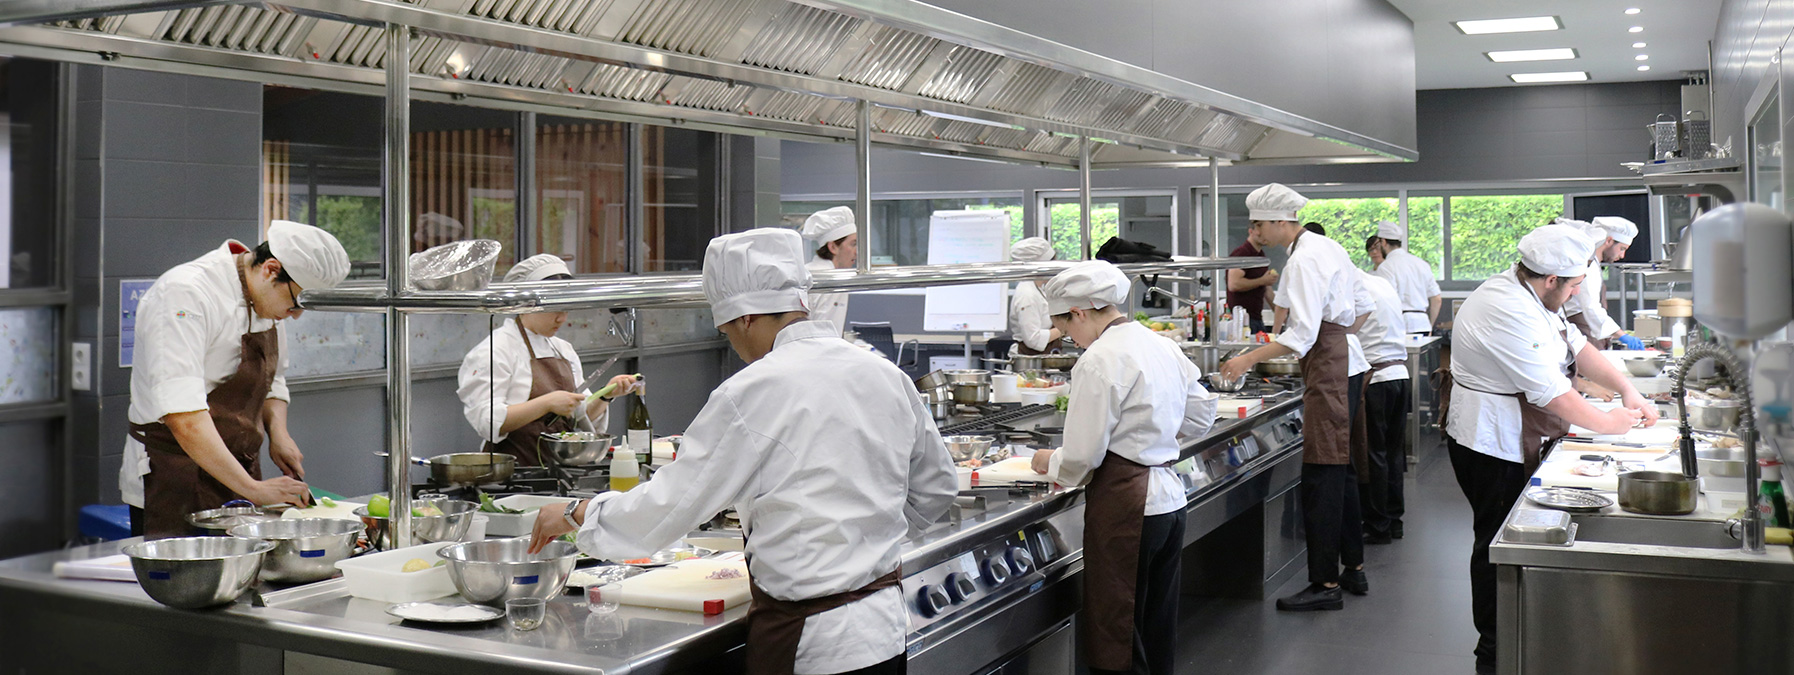 universidad gastronomica internacional